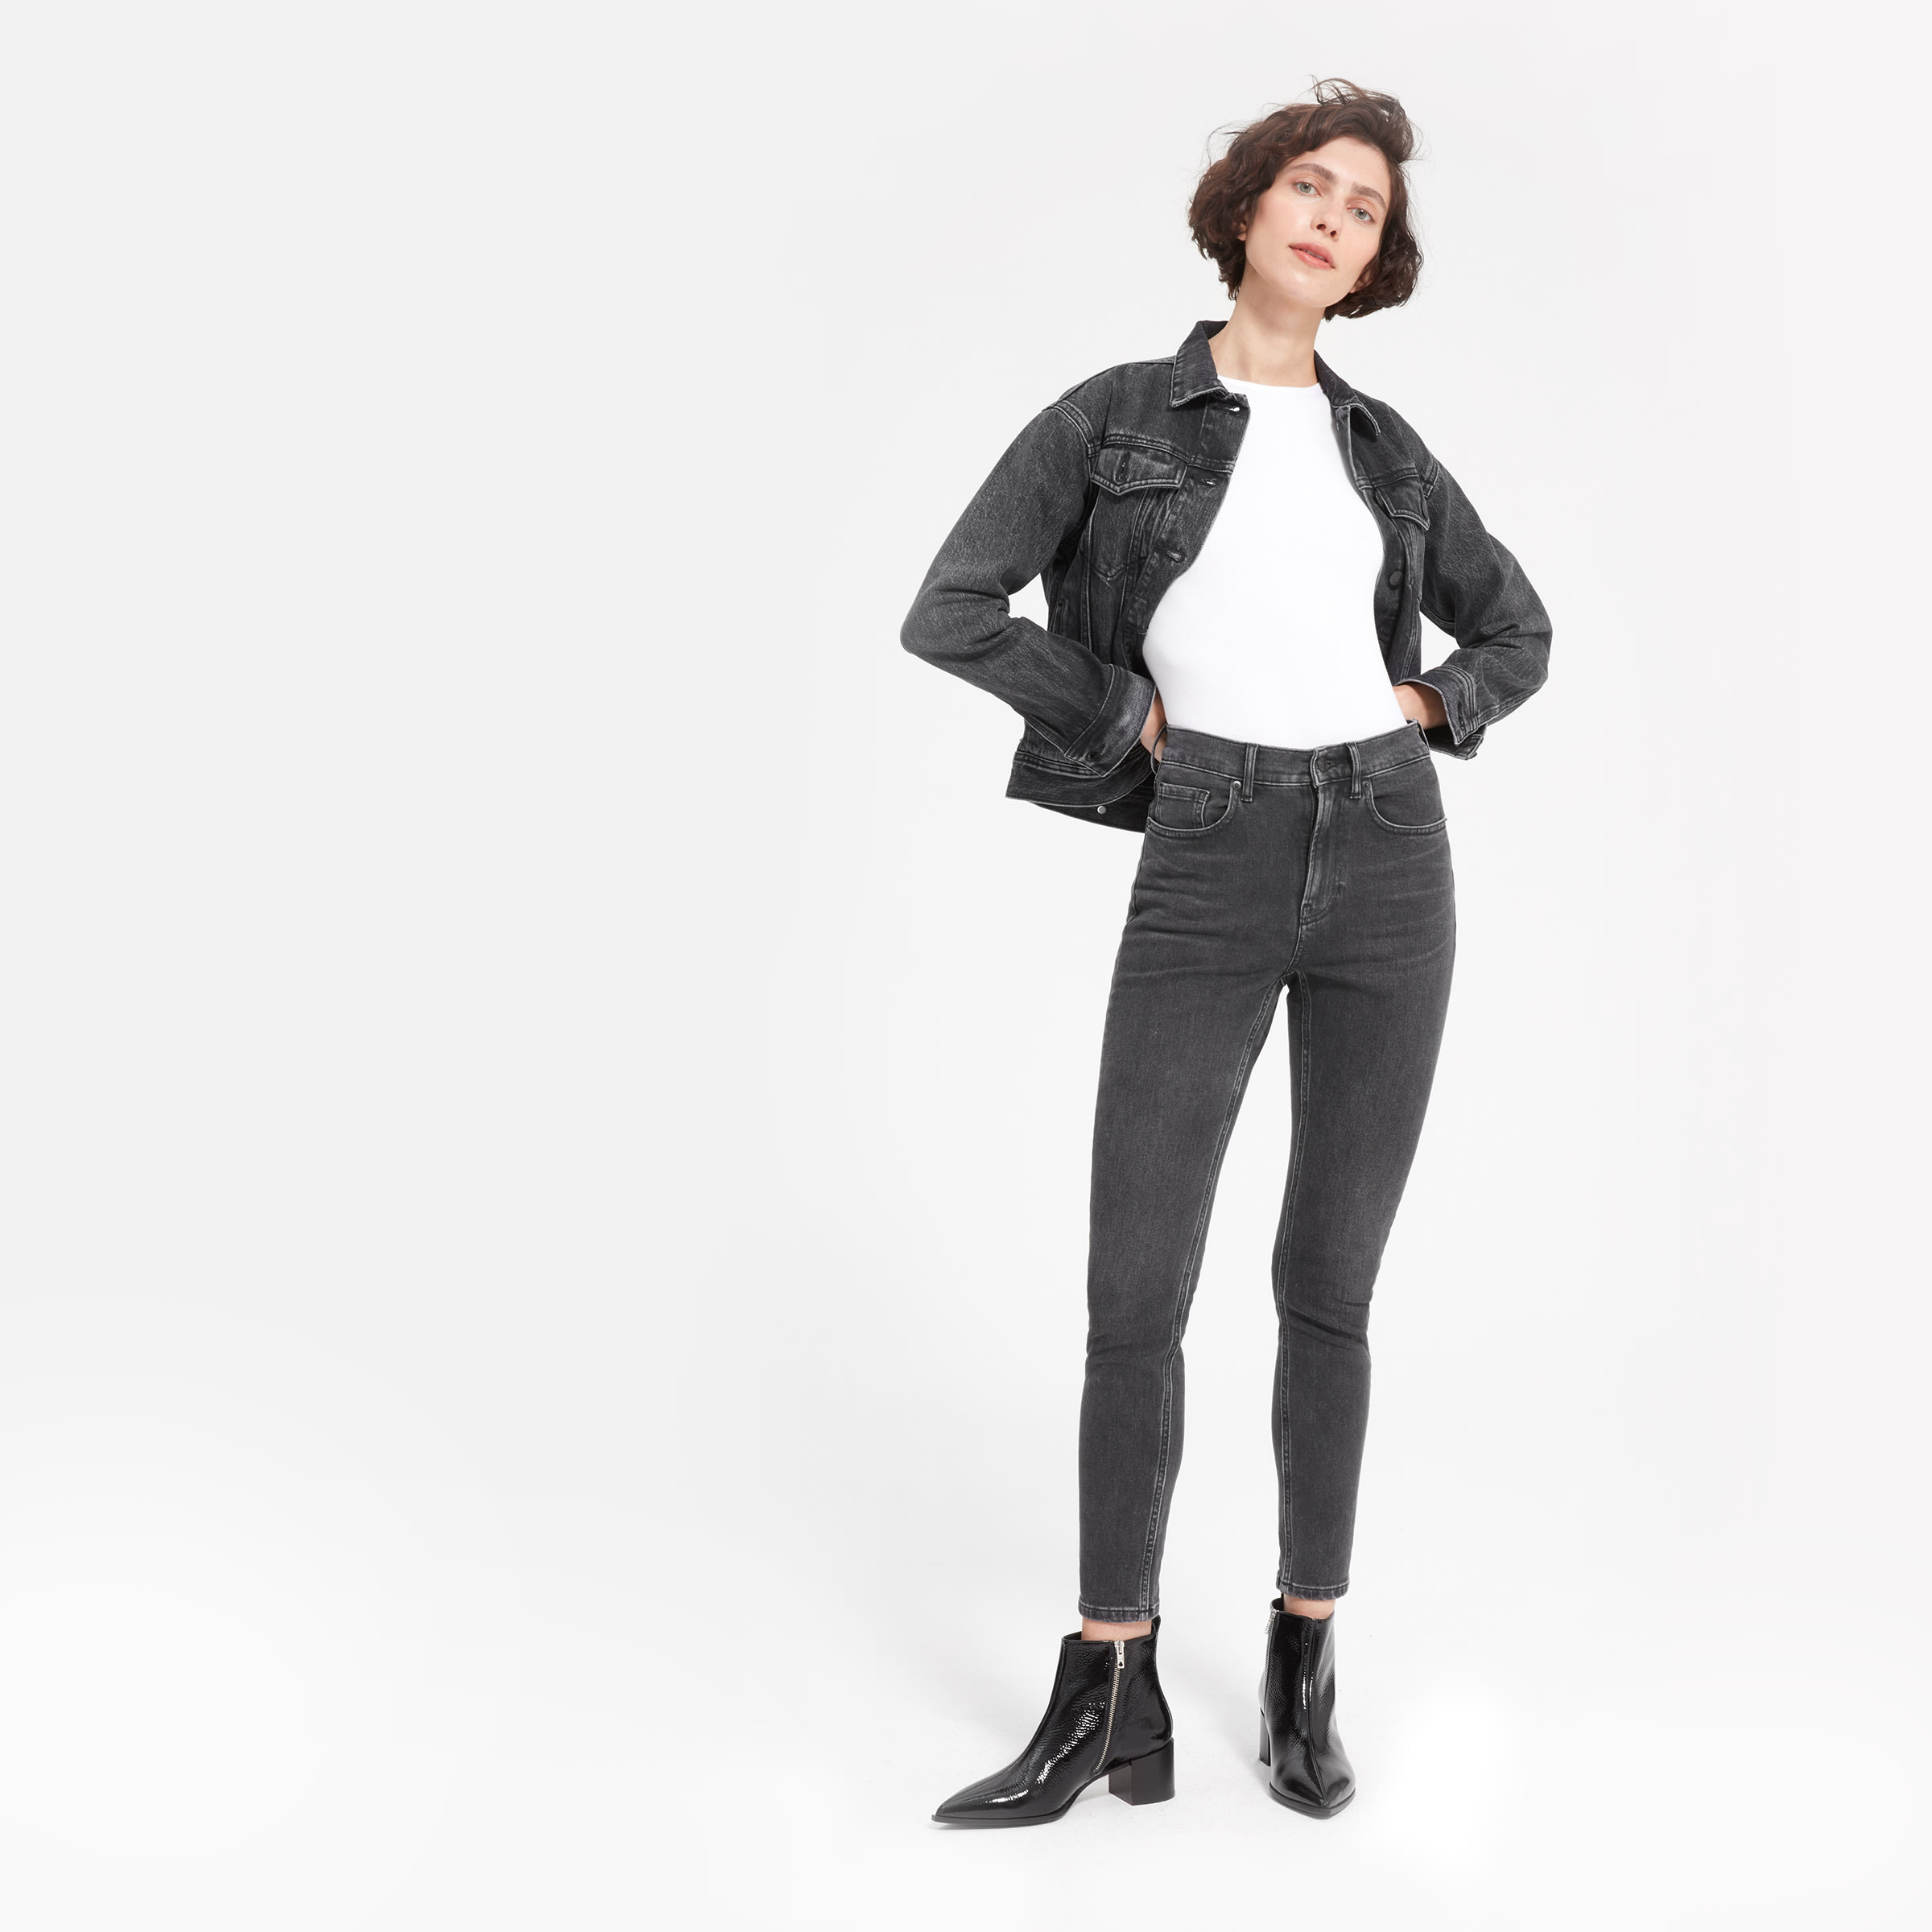 The High Rise Skinny Jean by Everlane